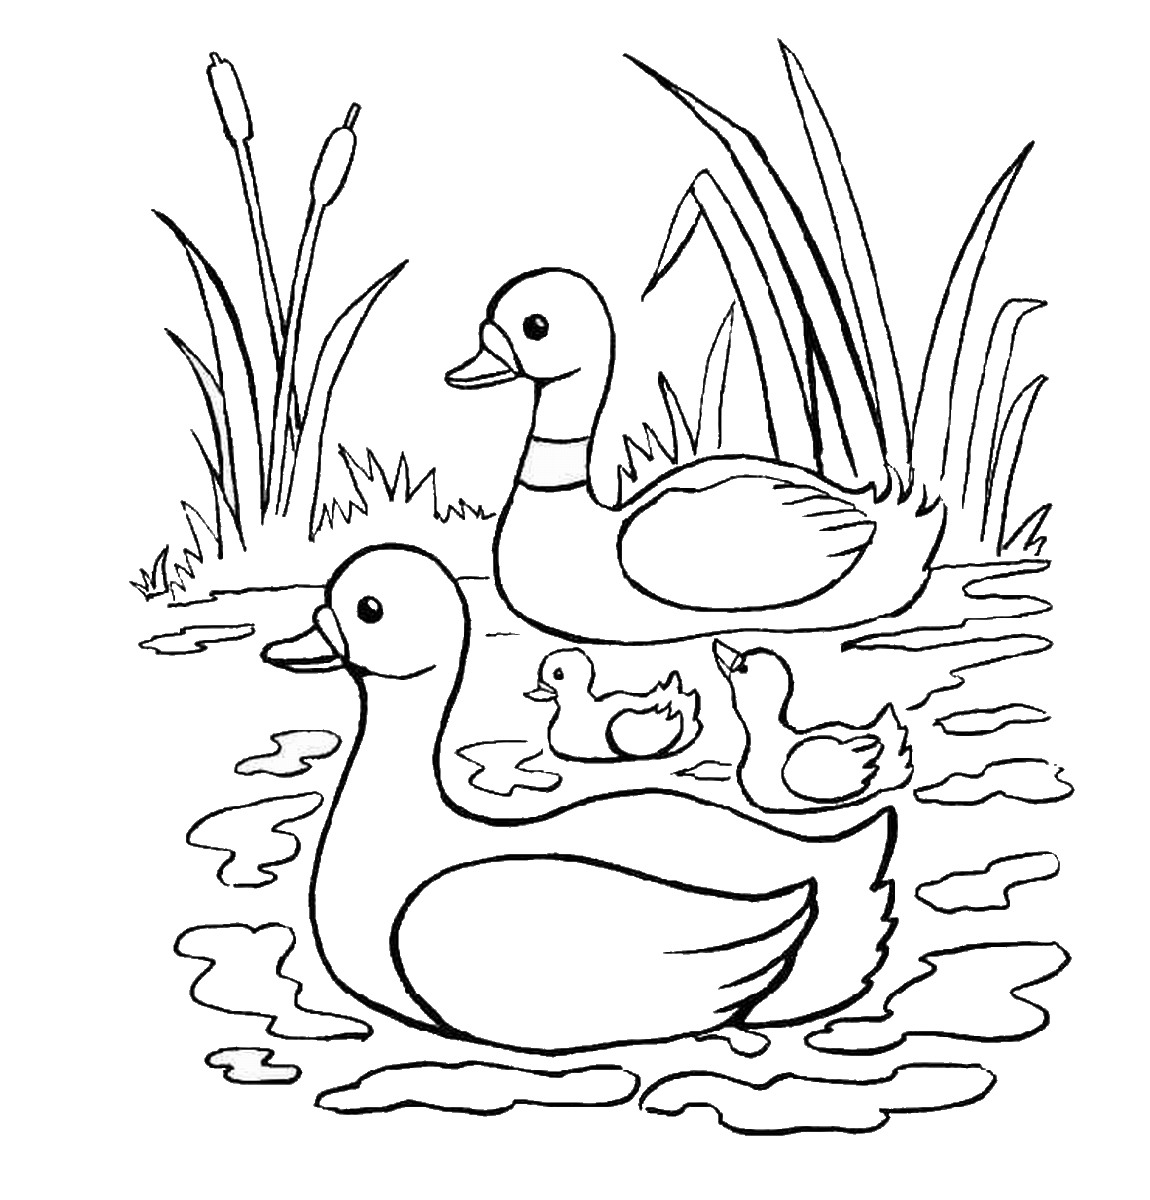 ducks coloring pages free easy to print duck coloring pages tulamama pages coloring ducks